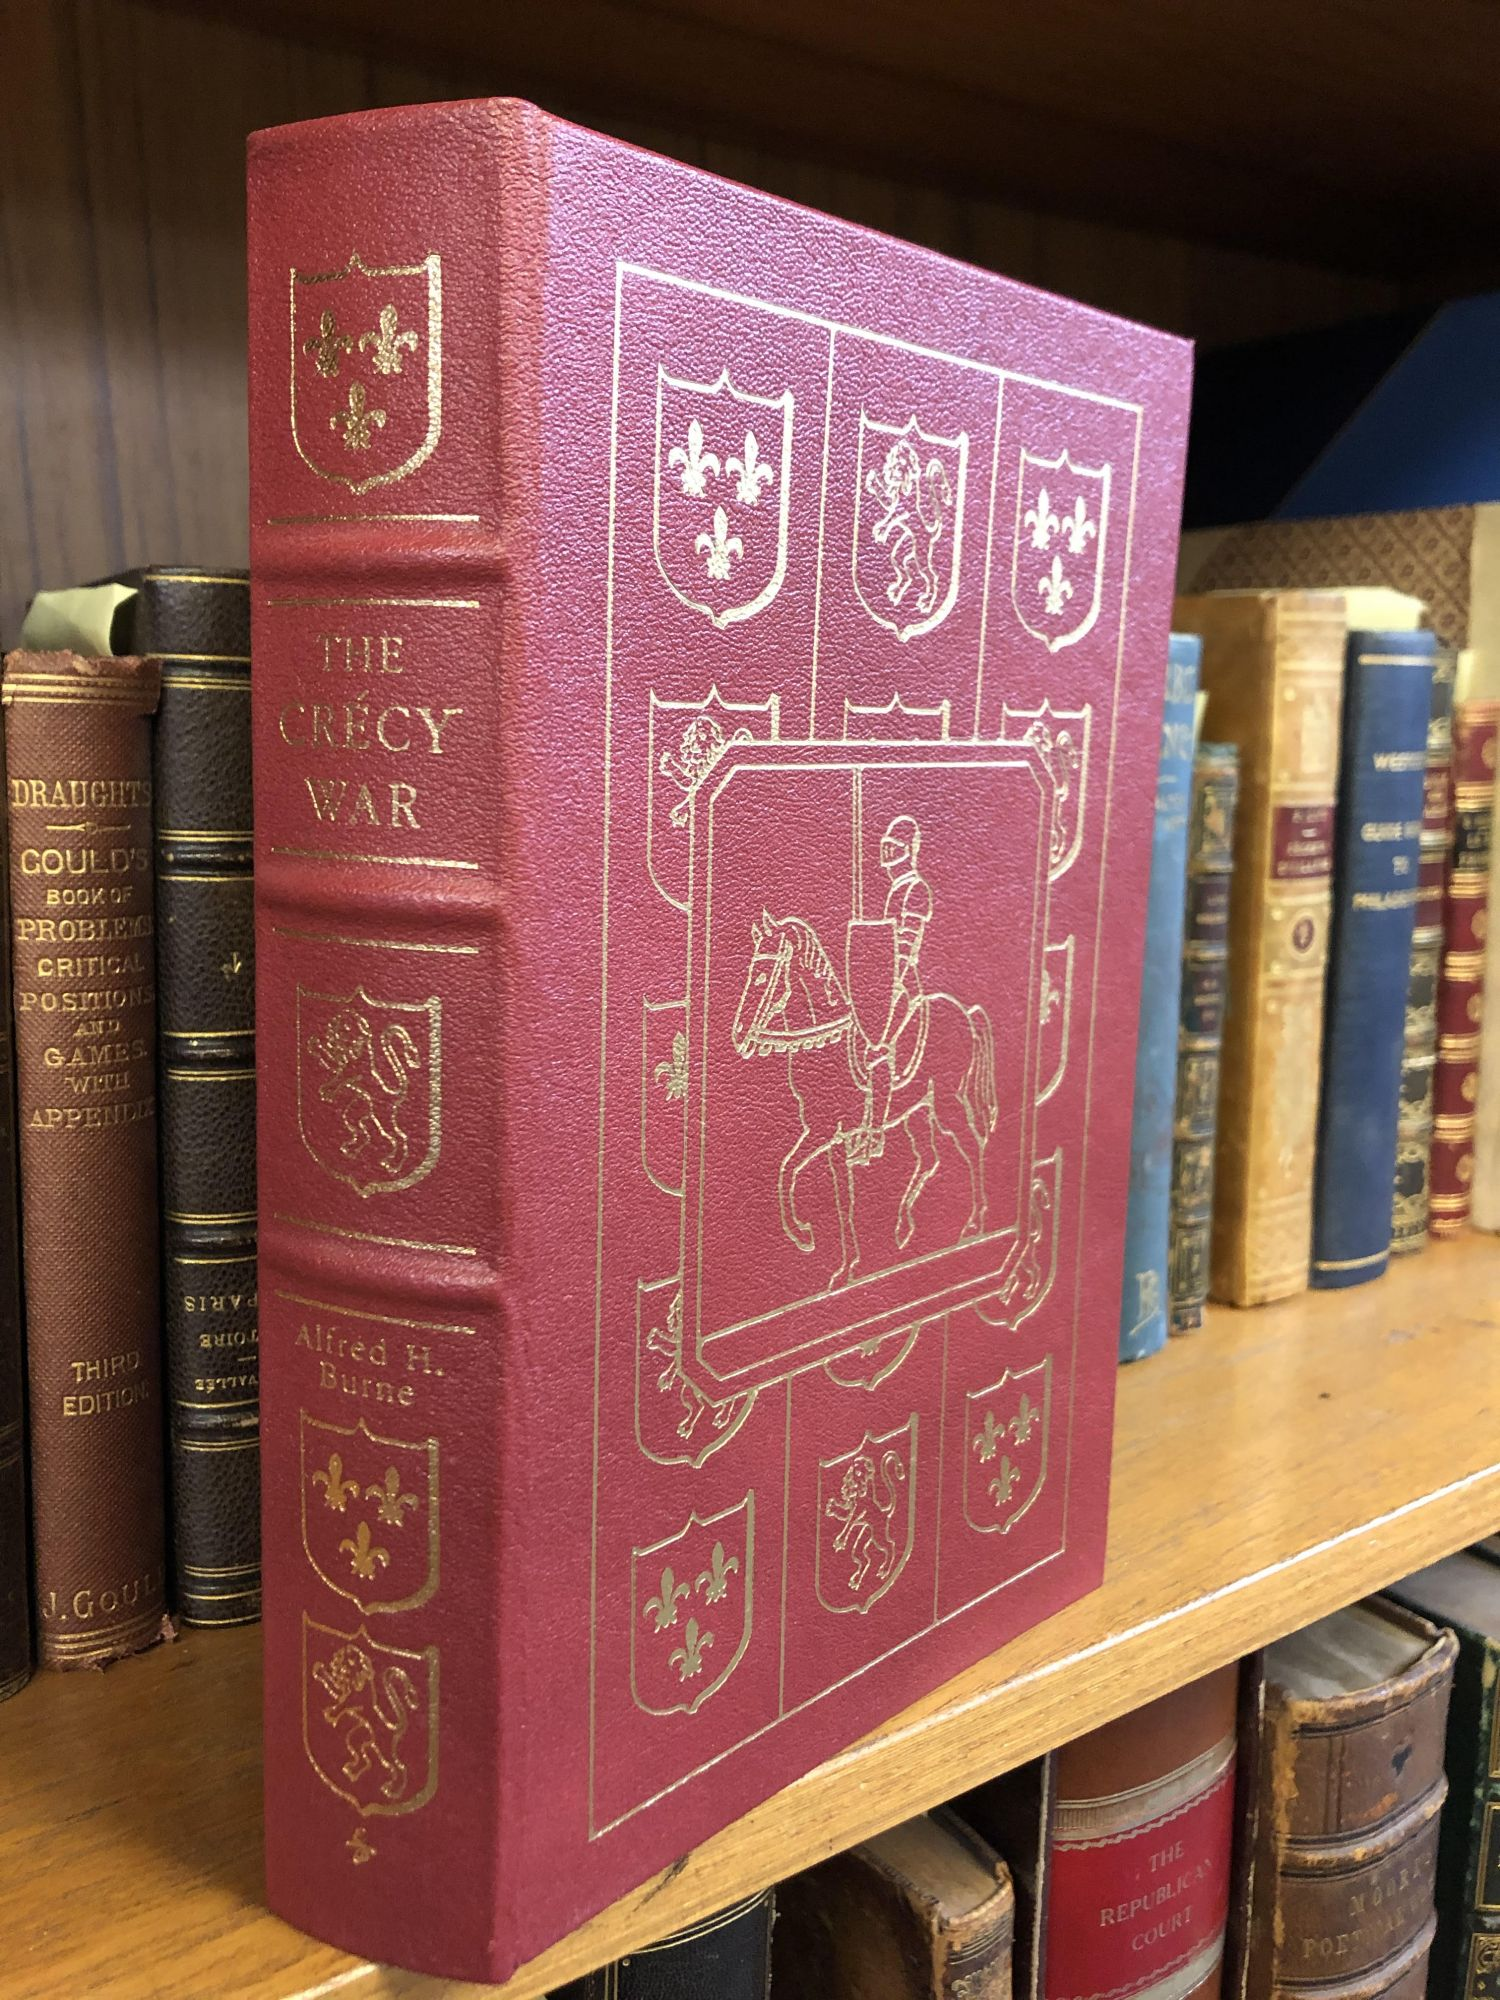 THE CRECY WAR: A MILITARY HISTORY OF THE HUNDRED YEARS WAR FROM 1337 TO THE PEACE OF BRETIGNY, 1360. Alfred H. Burne.